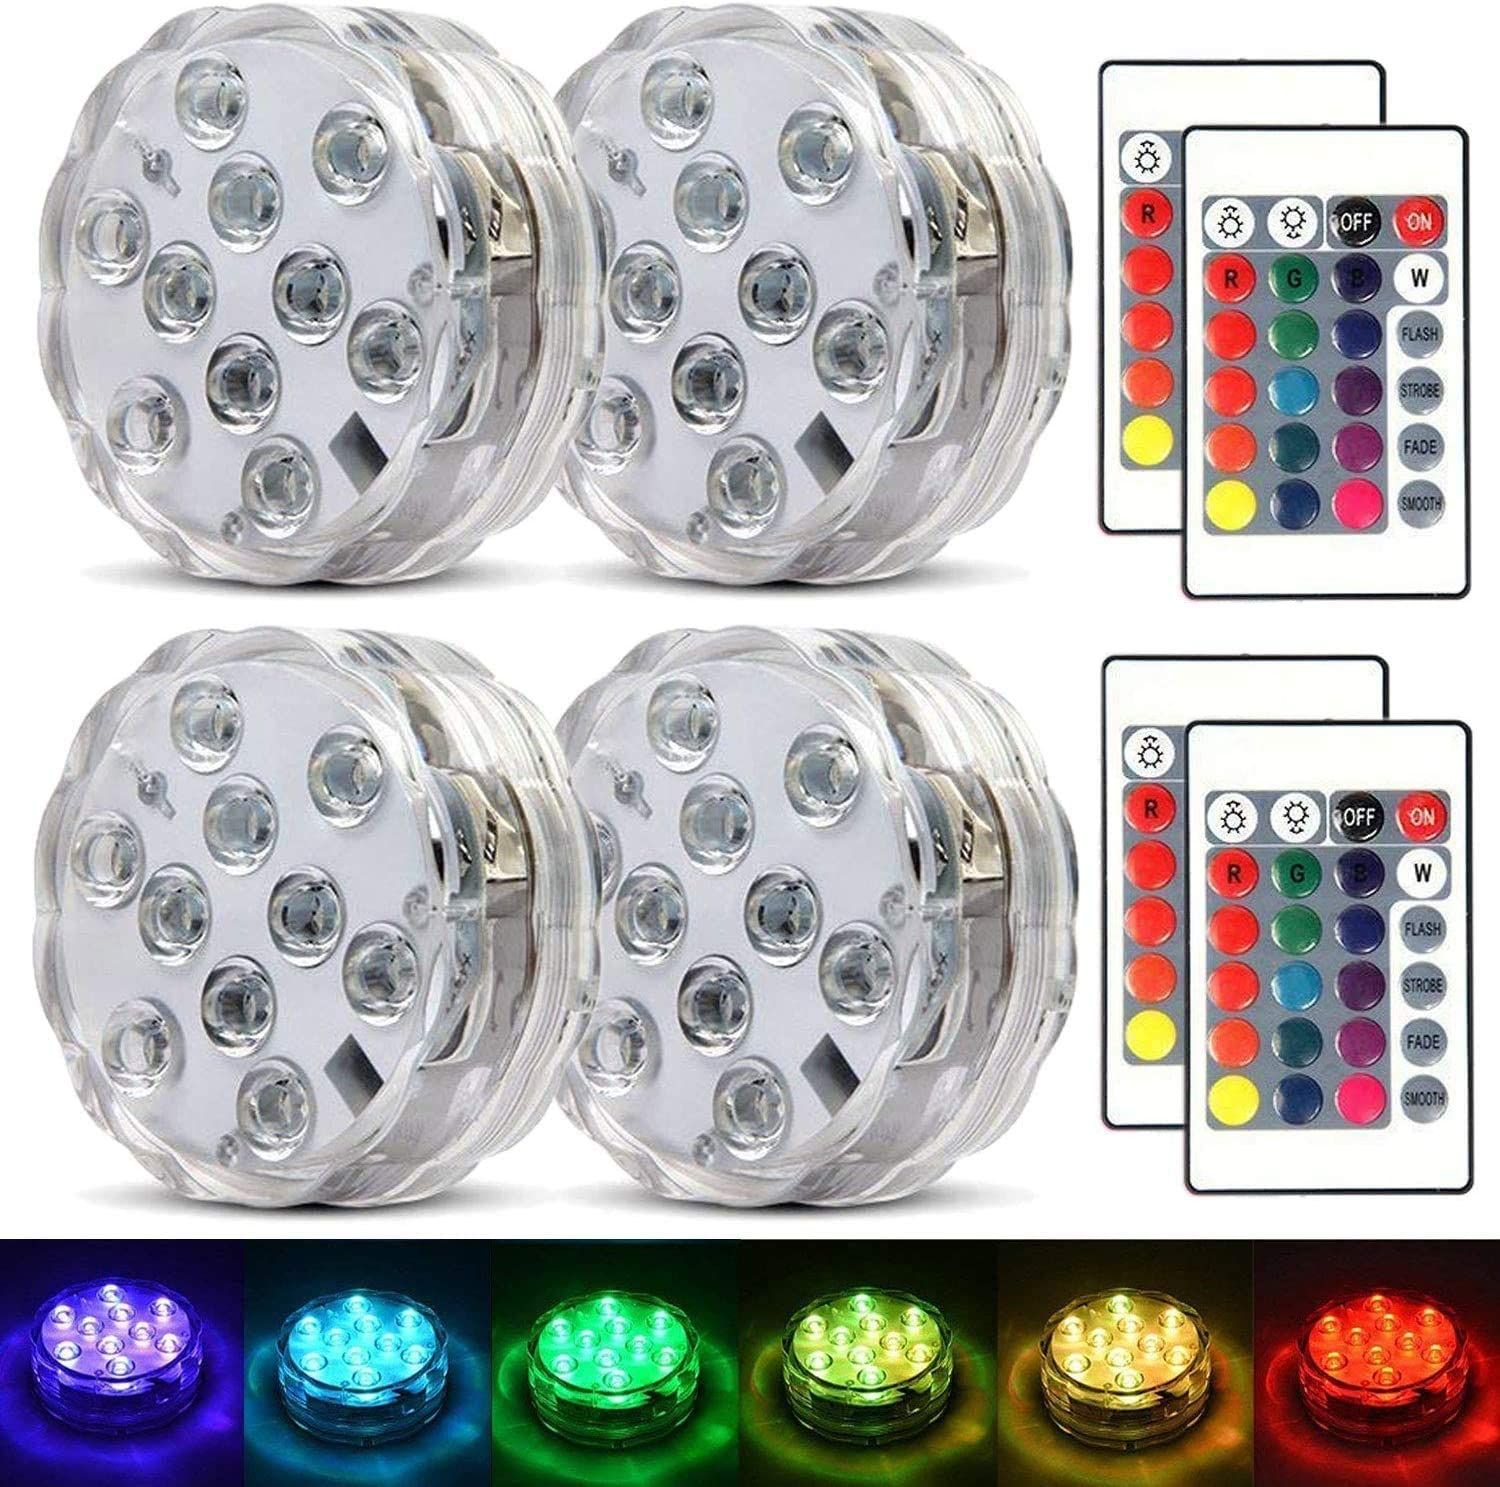 NDHENG 4 Pack Submersible LED Lights Waterproof Multi-Color Battery Remote Control, Party Perfect Decorative Lighting, for Hot Tub, Pool, Pond,Foundation,Party,